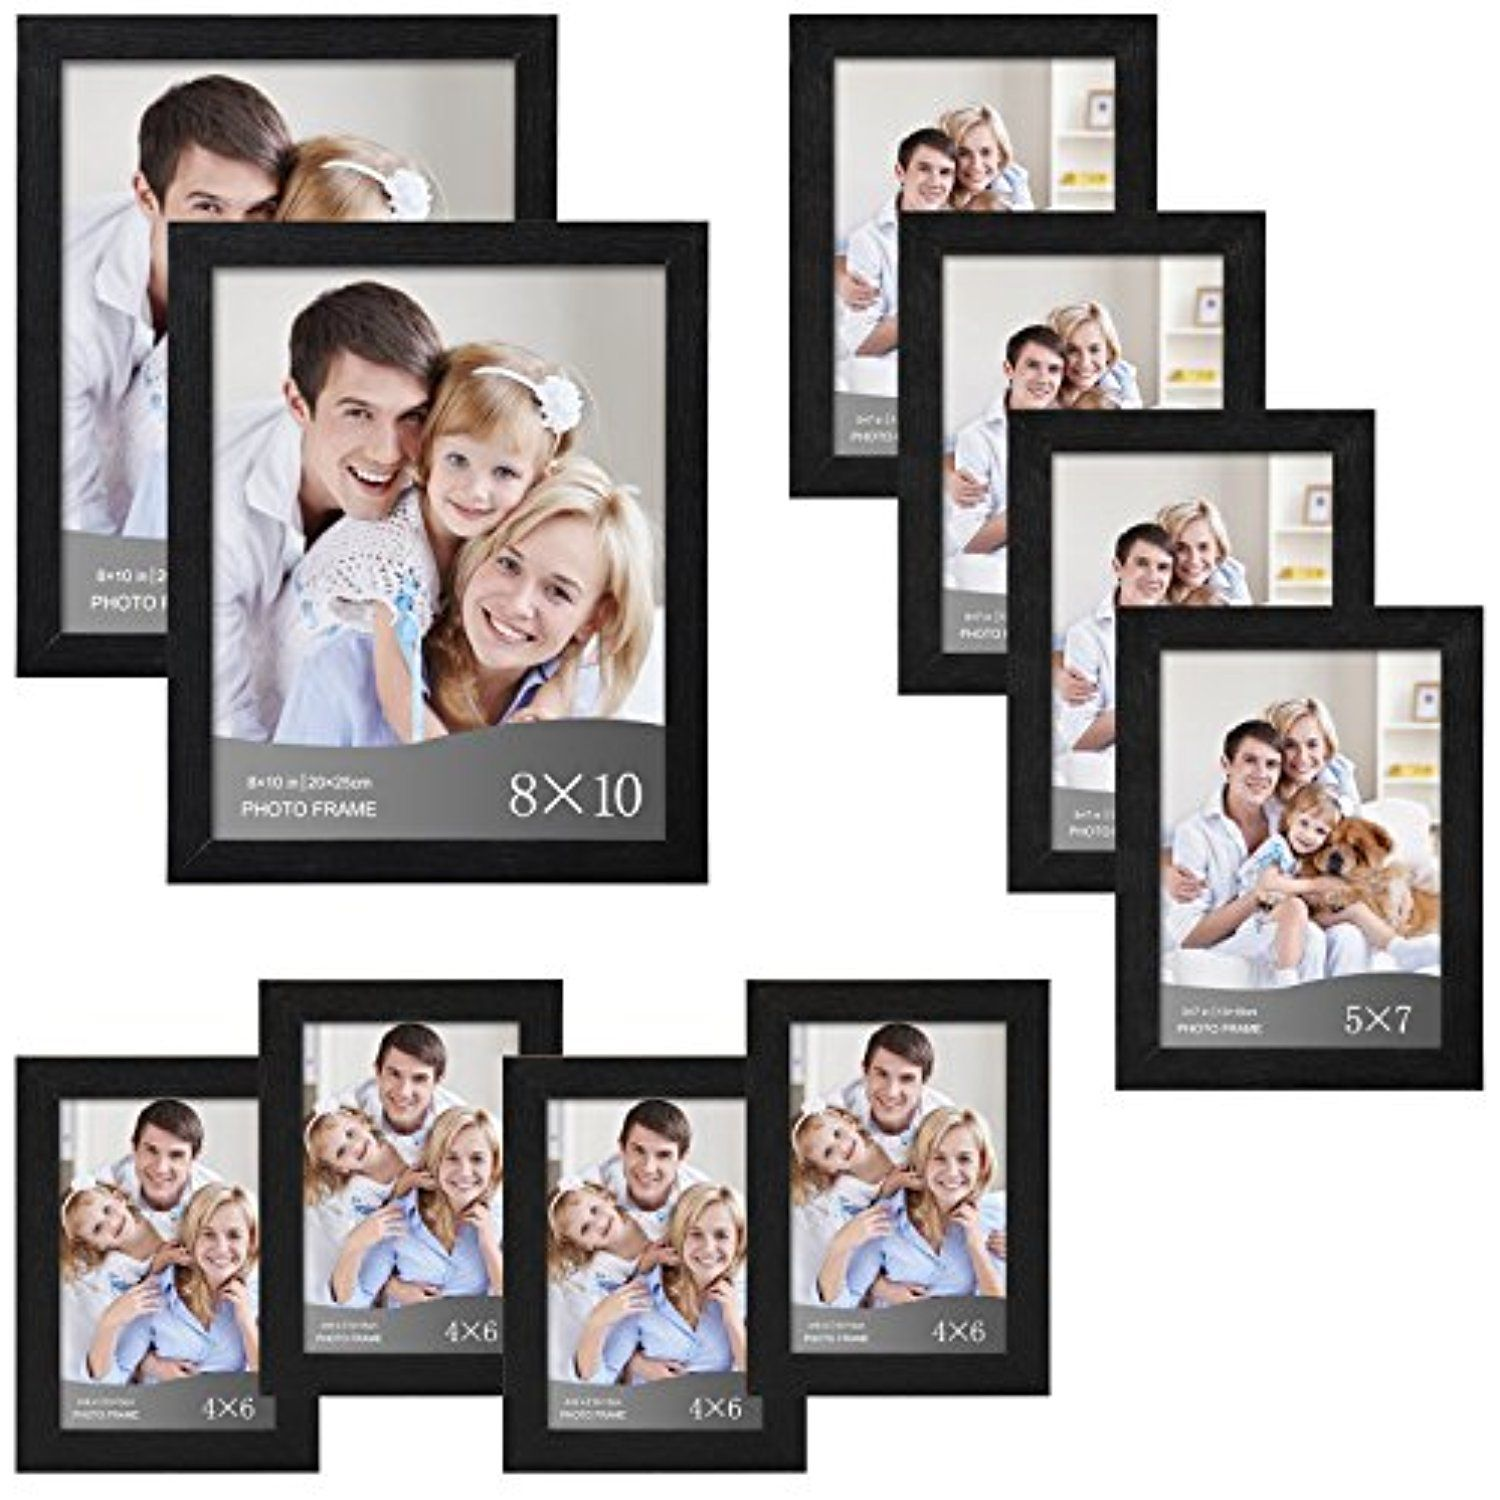 Woltu 10 Piece Multi Pack Black Picture Frame Set For Wall With Plexiglass Cover 2 8x10 4 5x7 4 4x6 Pf02c1 Picture Frame Sets Black Picture Frames Frame Set